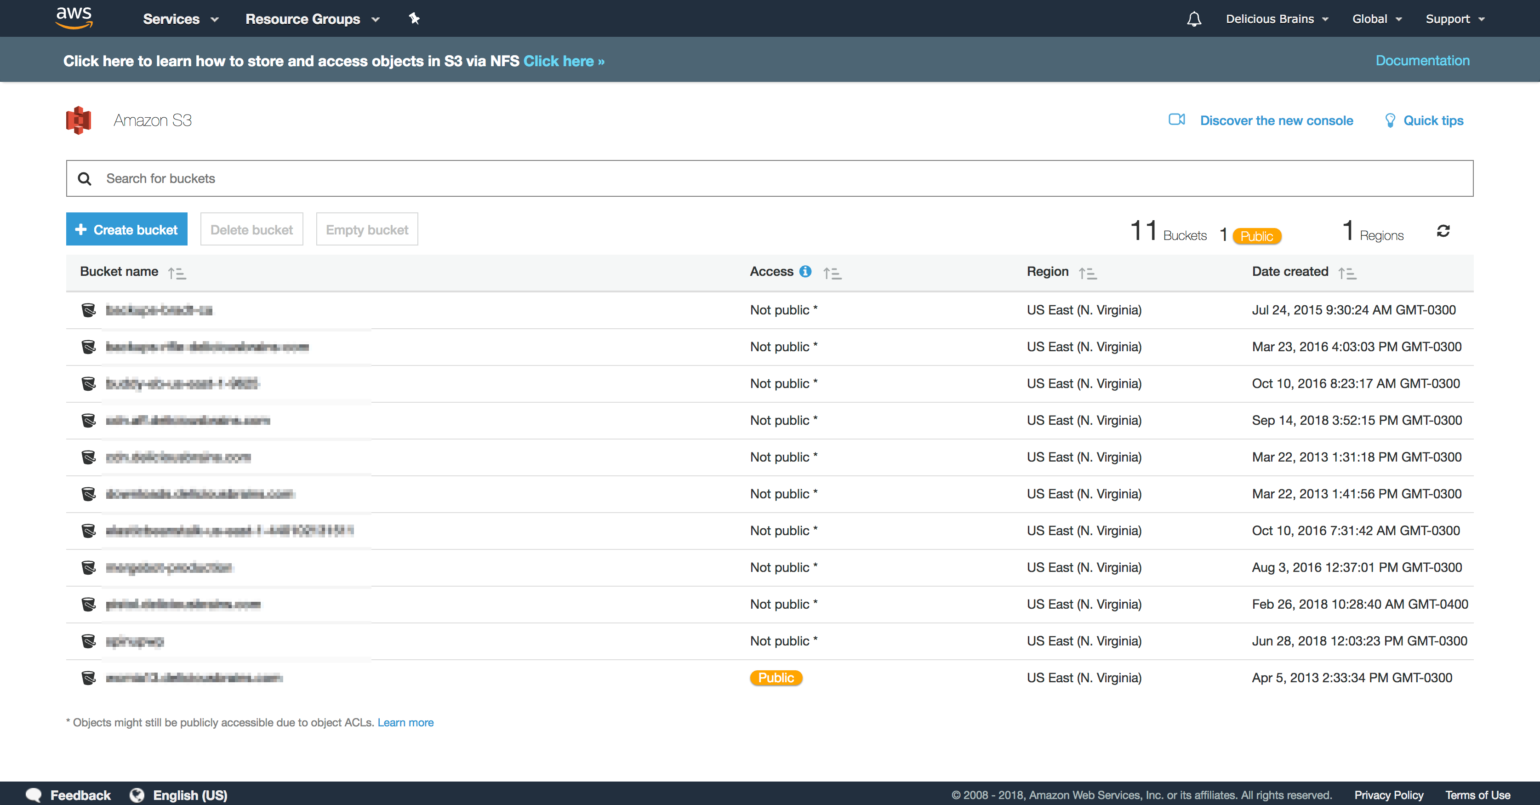 Screenshot of Amazon S3 in the AWS Console